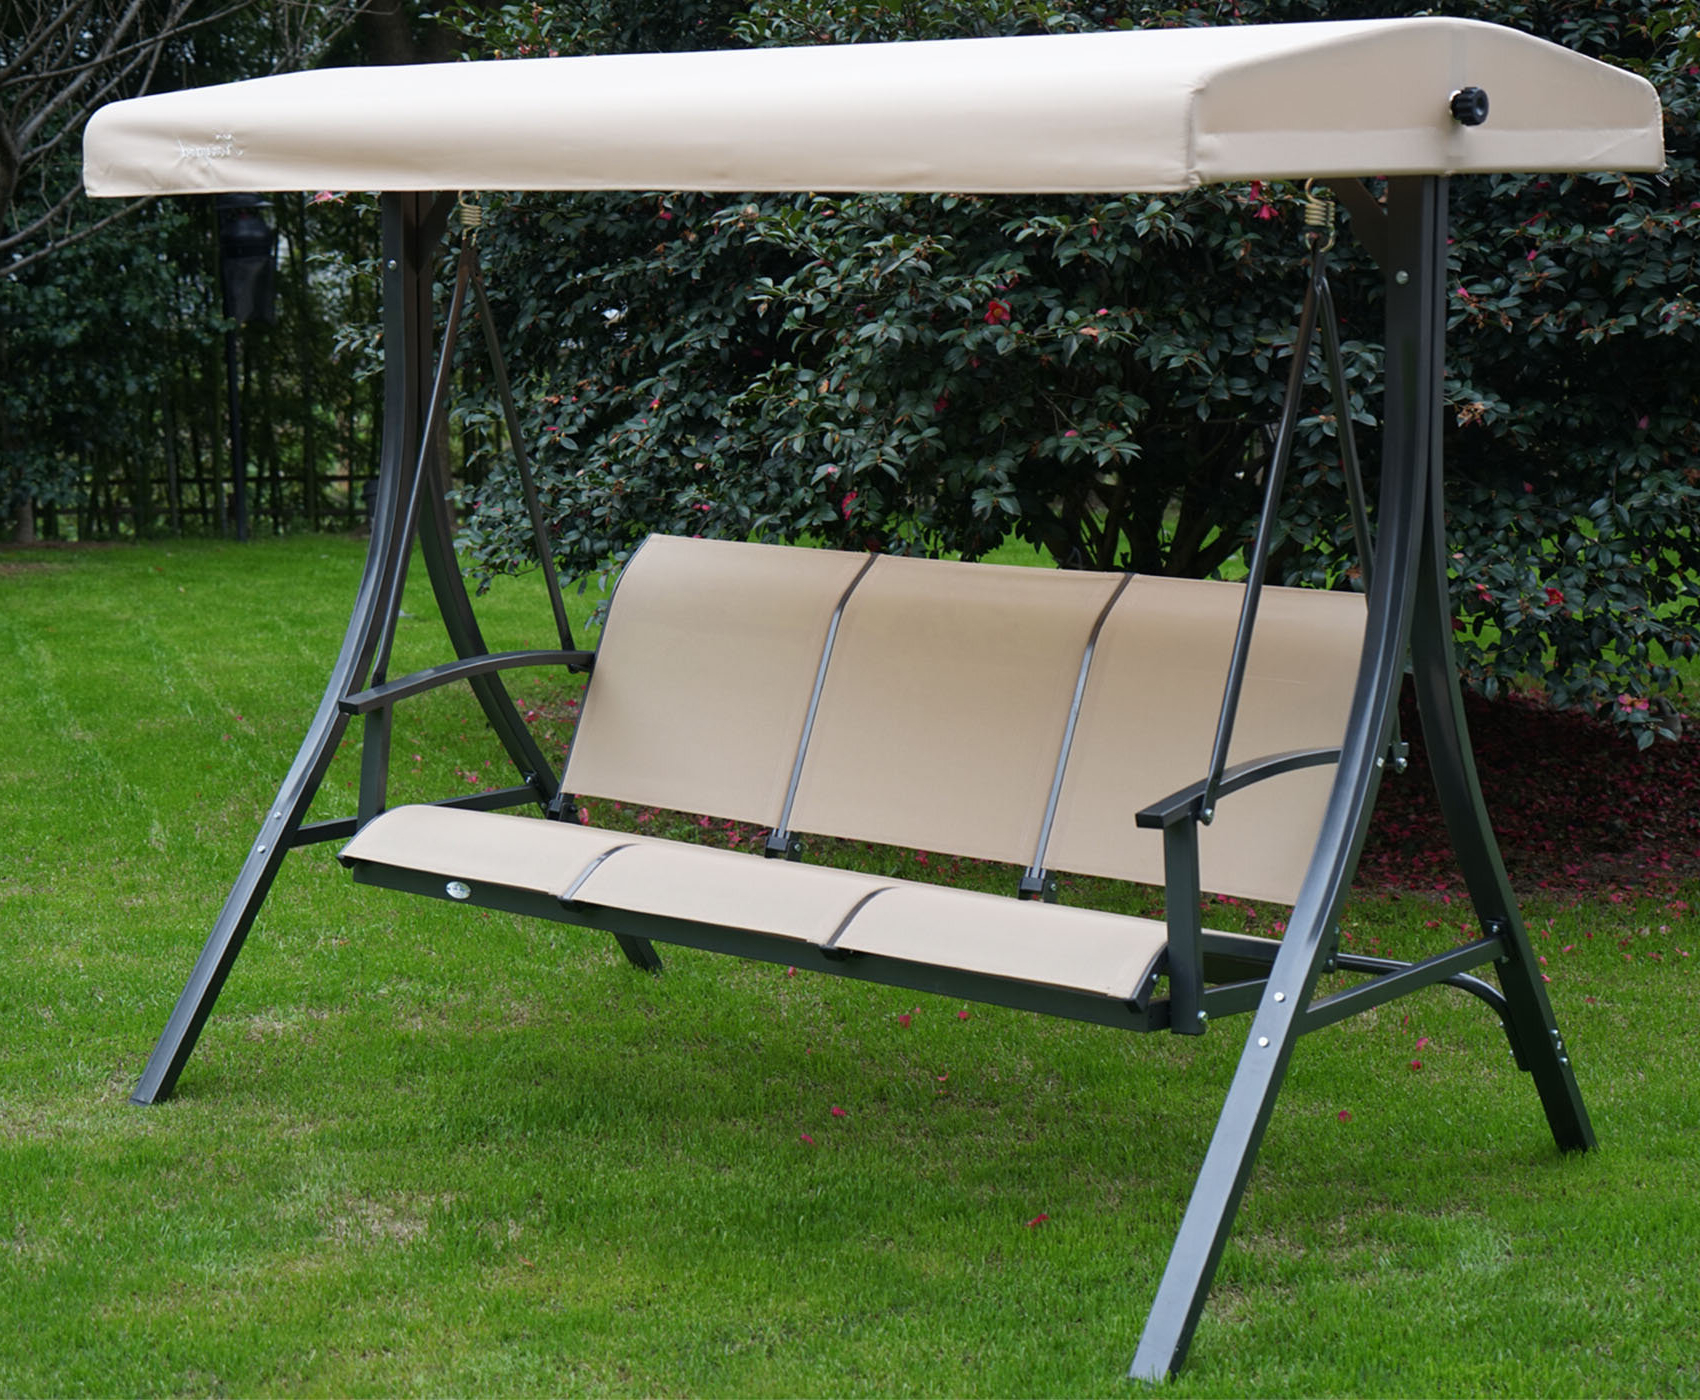 2020 Patio Porch Swings With Stand Pertaining To Otteridge Patio Porch Swing With Stand (View 7 of 25)